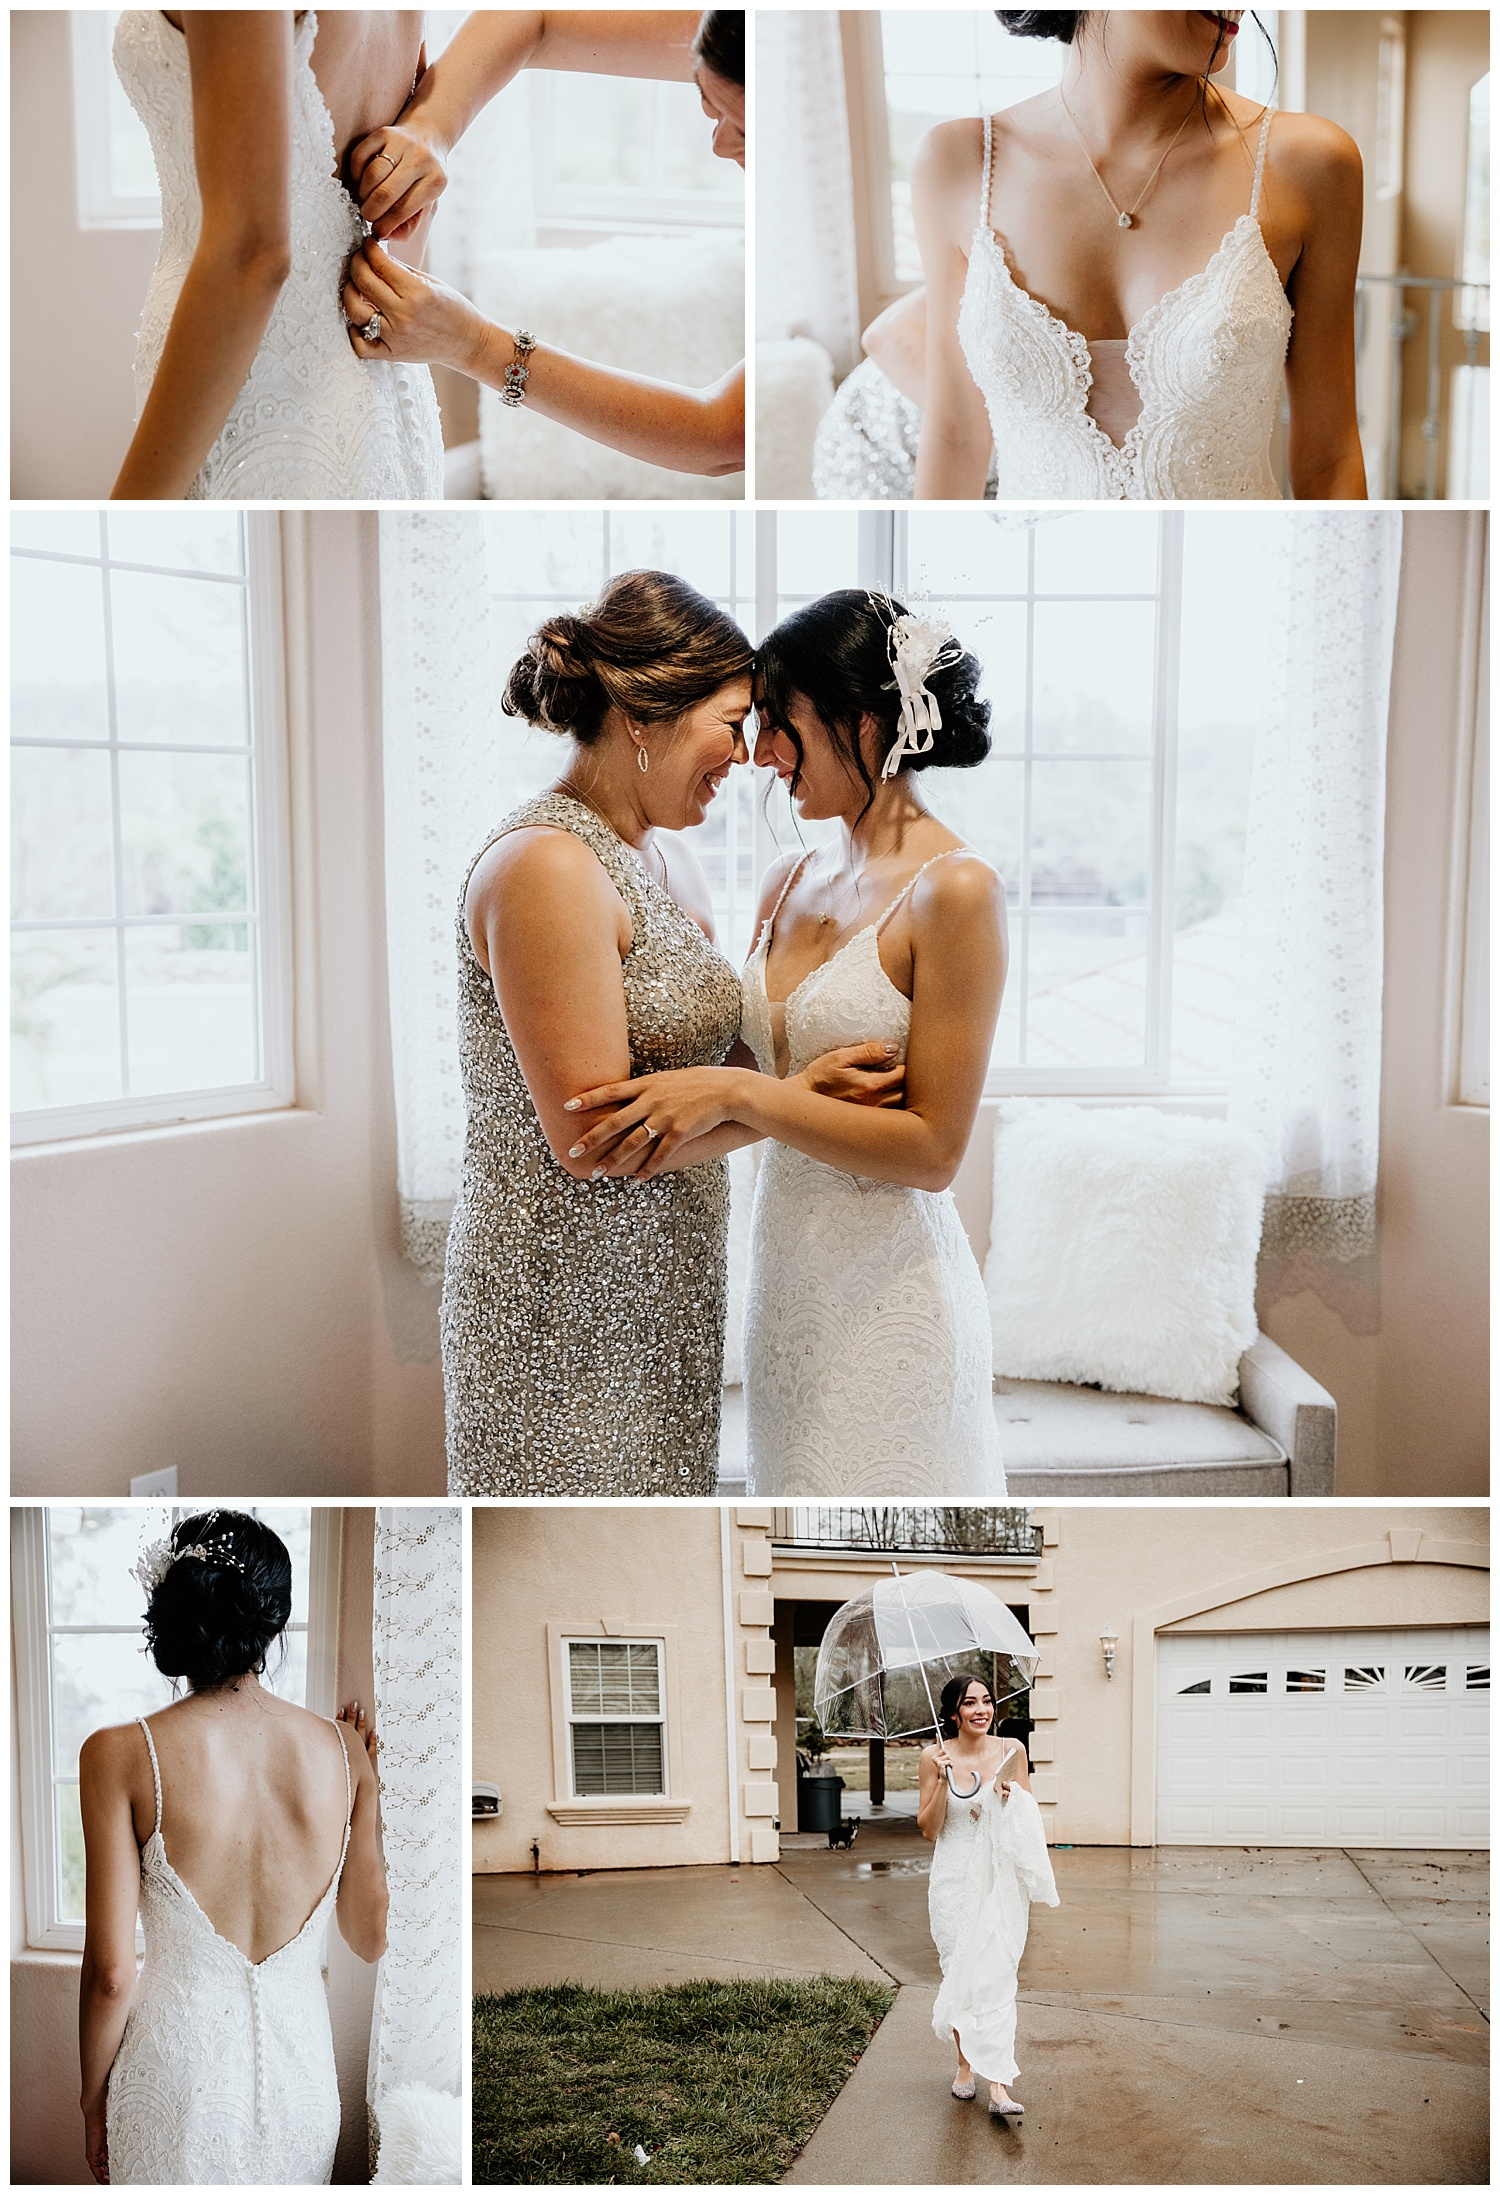 the-530-bride_chico-wedding-planner_veronica-and-manny